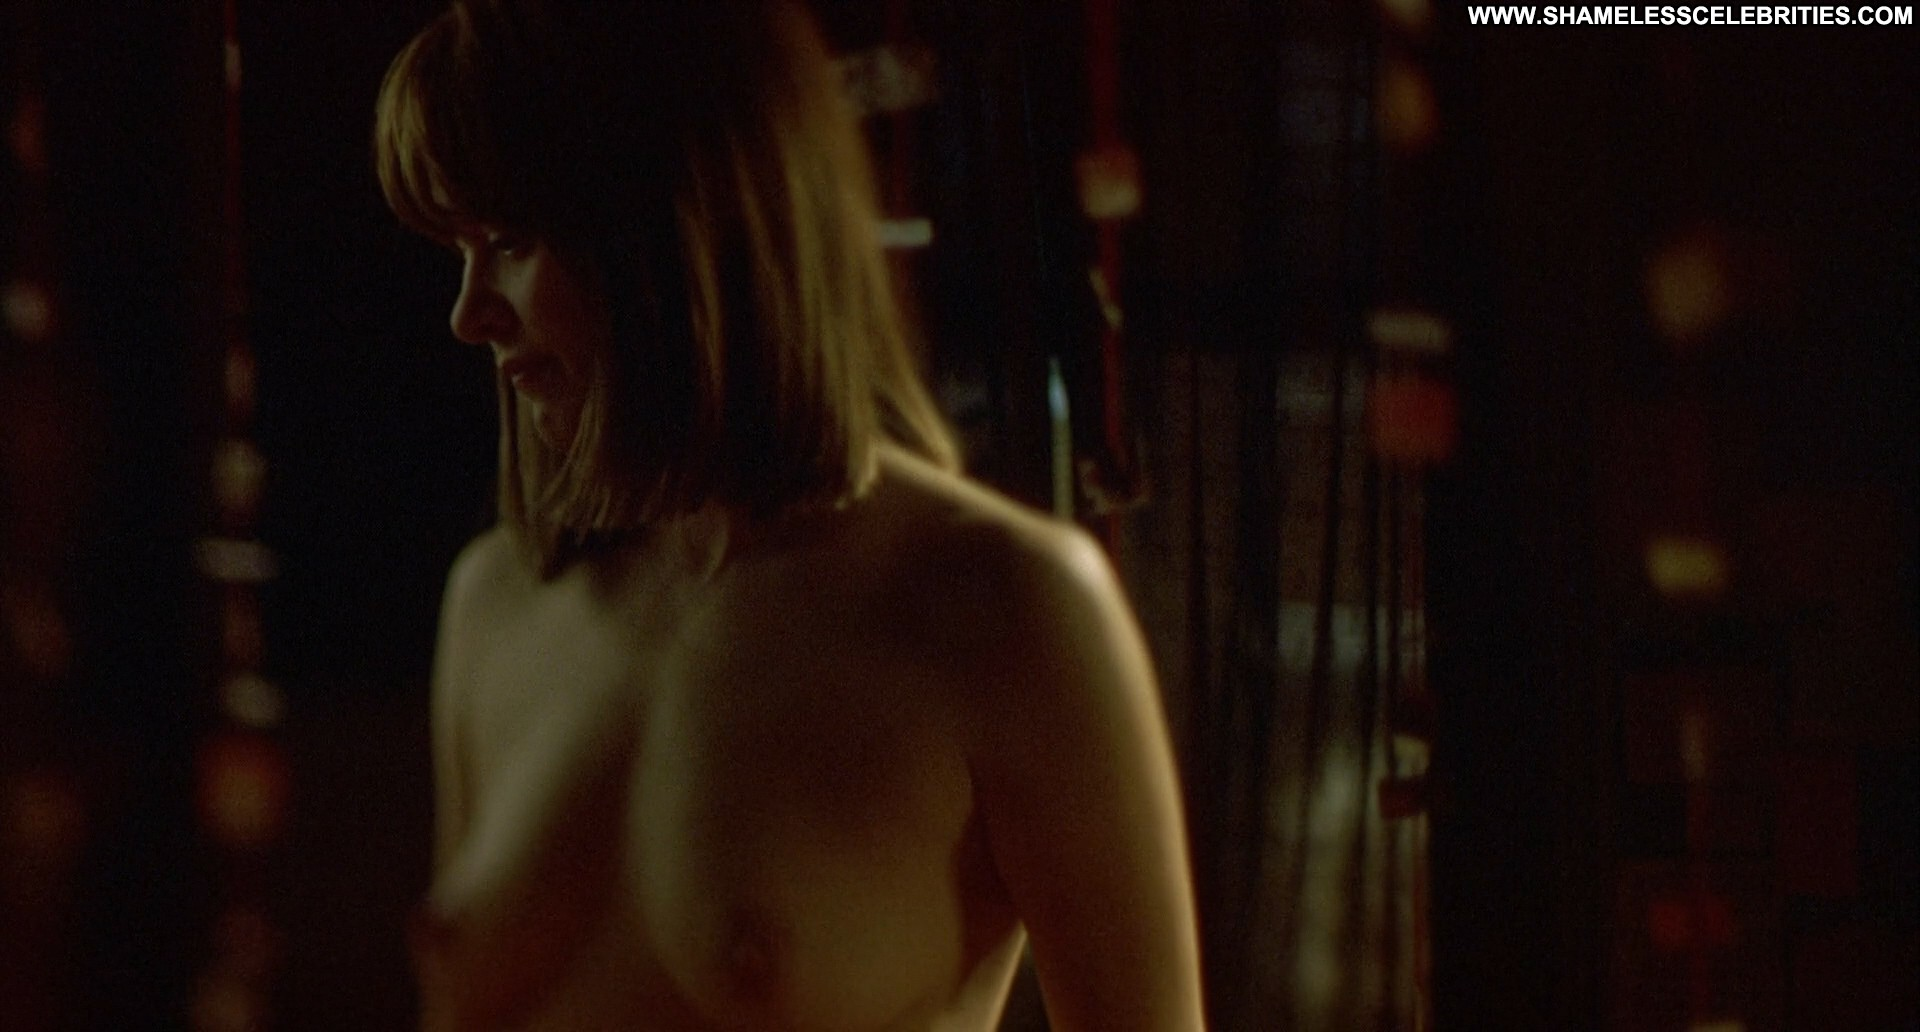 Cut meg ryan naked